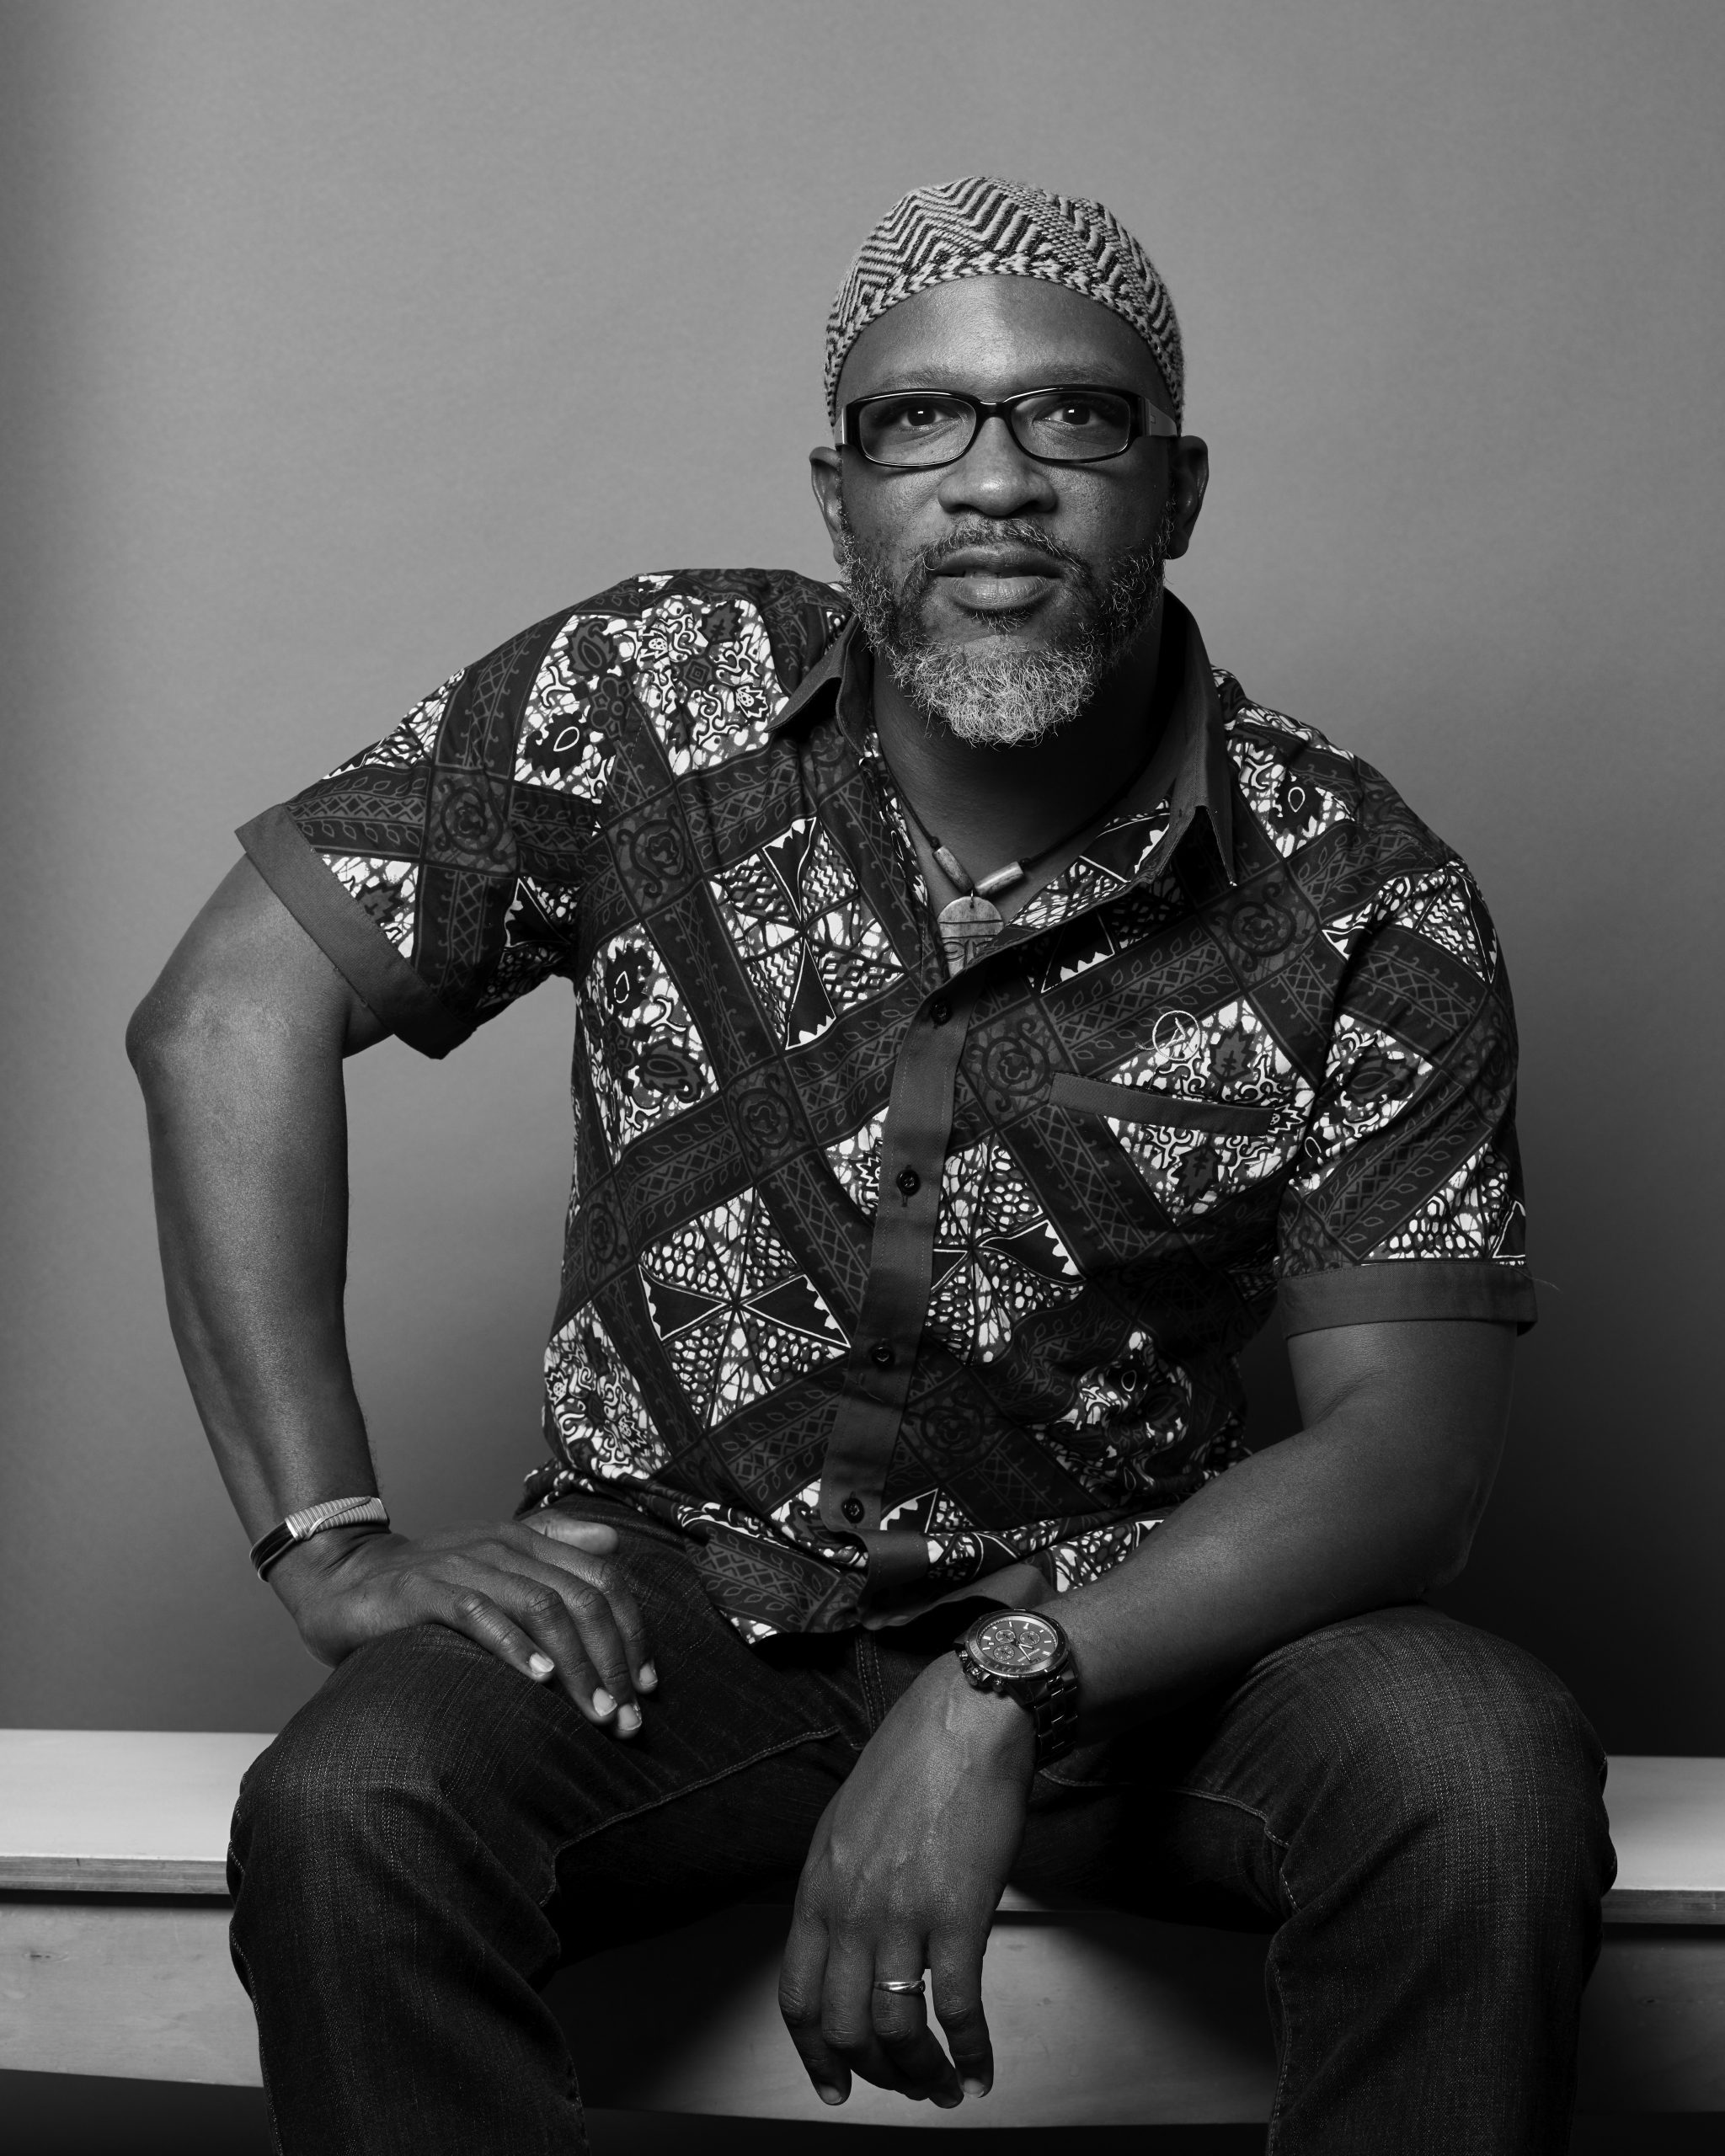 TOUR ANNOUNCEMENT: Orrin Evans Announces 2020 Touring Schedule